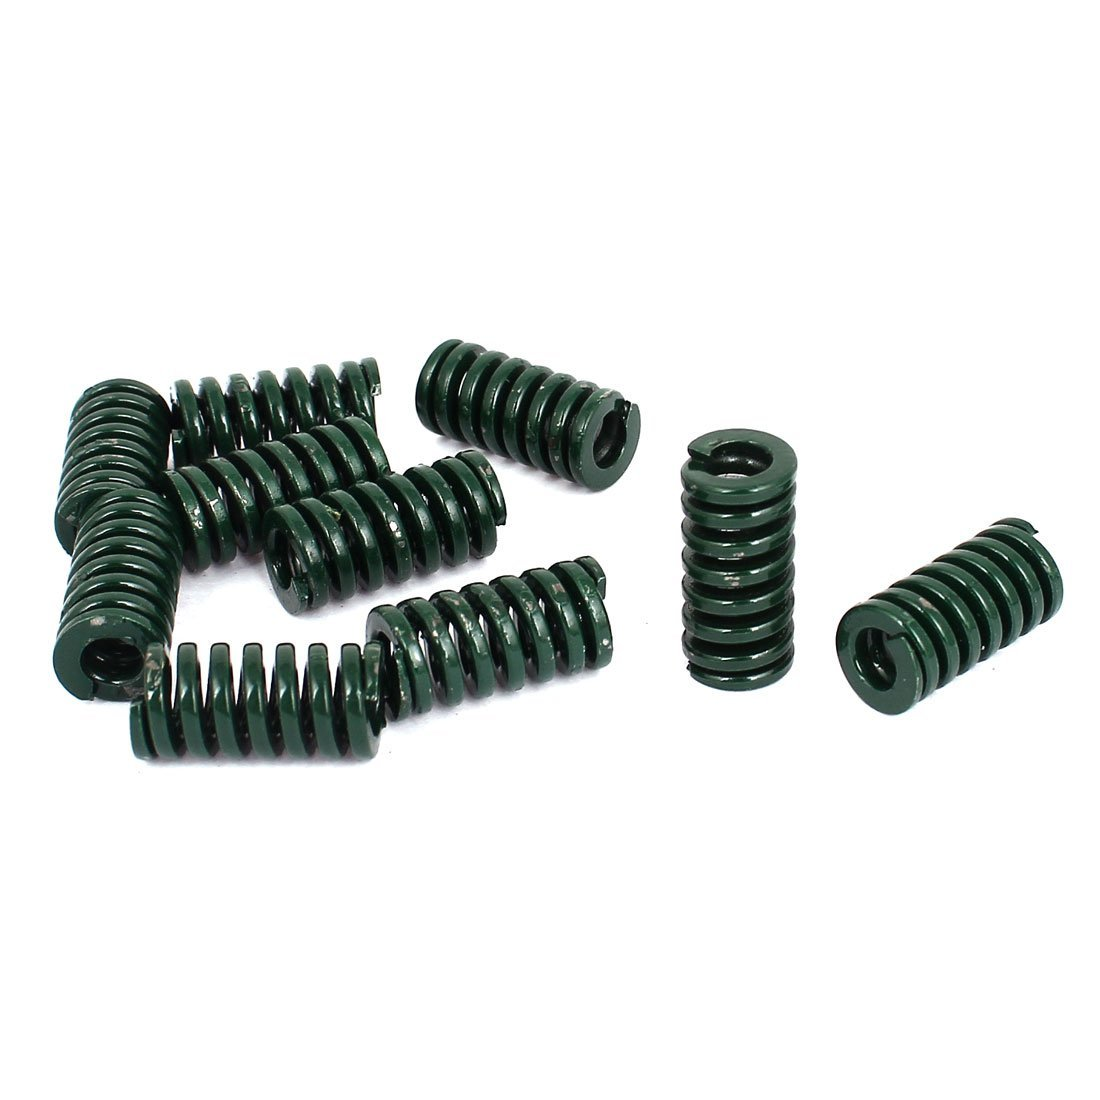 10mm OD 20mm Long Heavy Load Compression Mold Die Spring Green 10pcs DealMux DLM-B013G68TKW